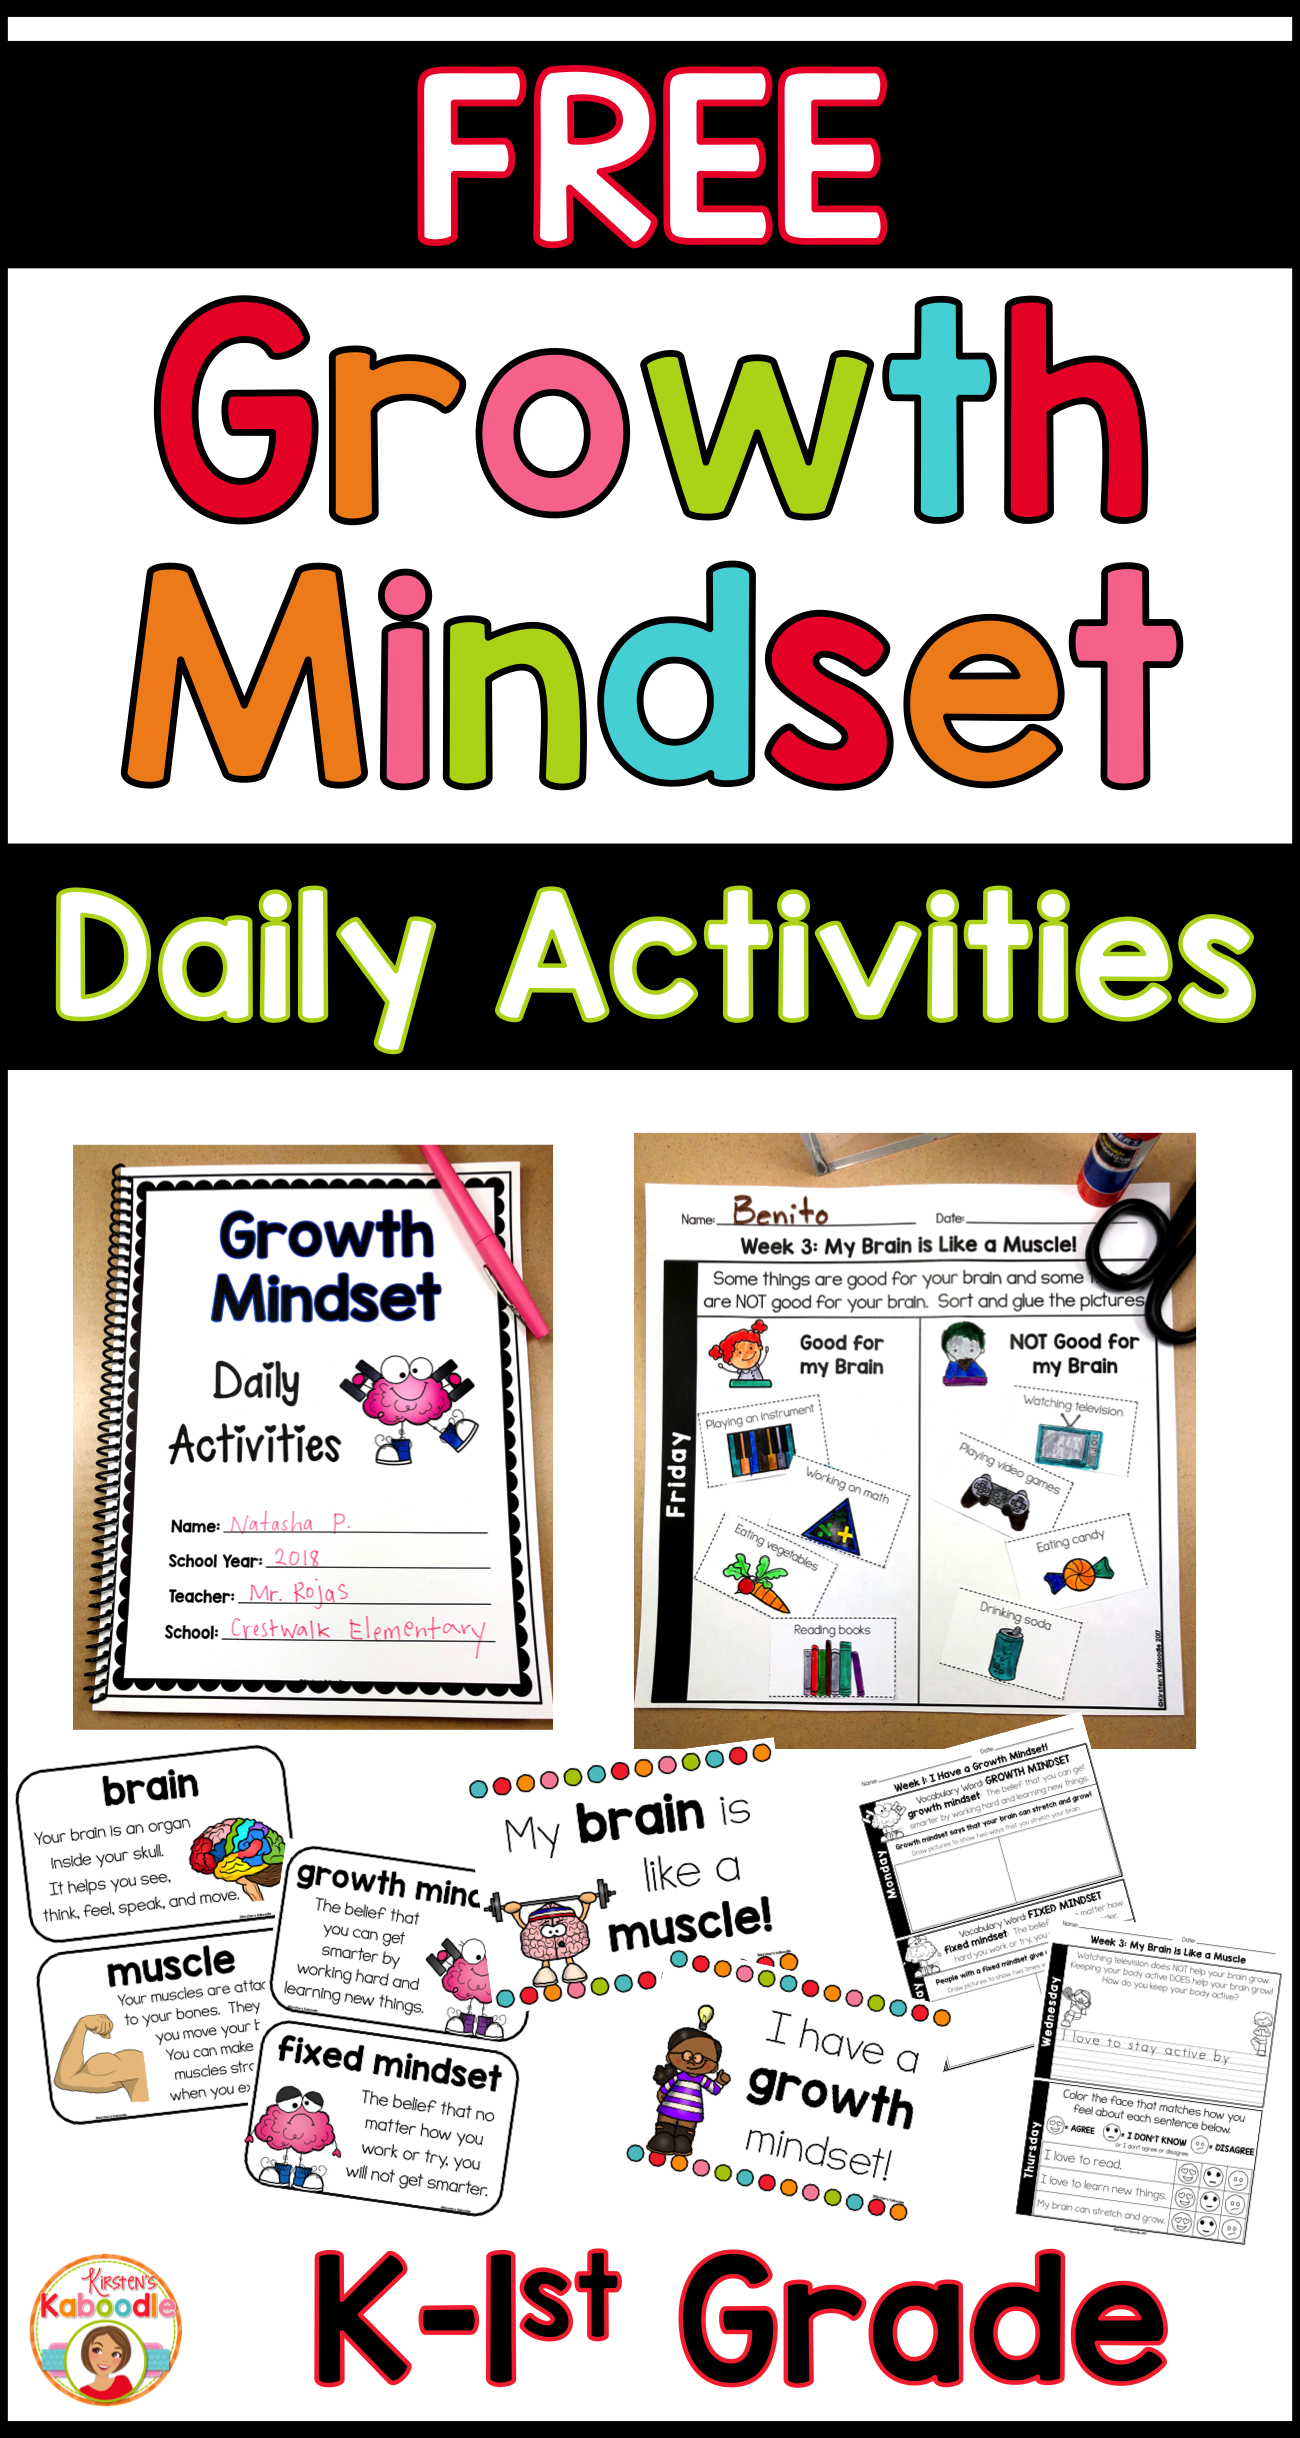 Growth Mindset Activities Daily Warm Up Journal